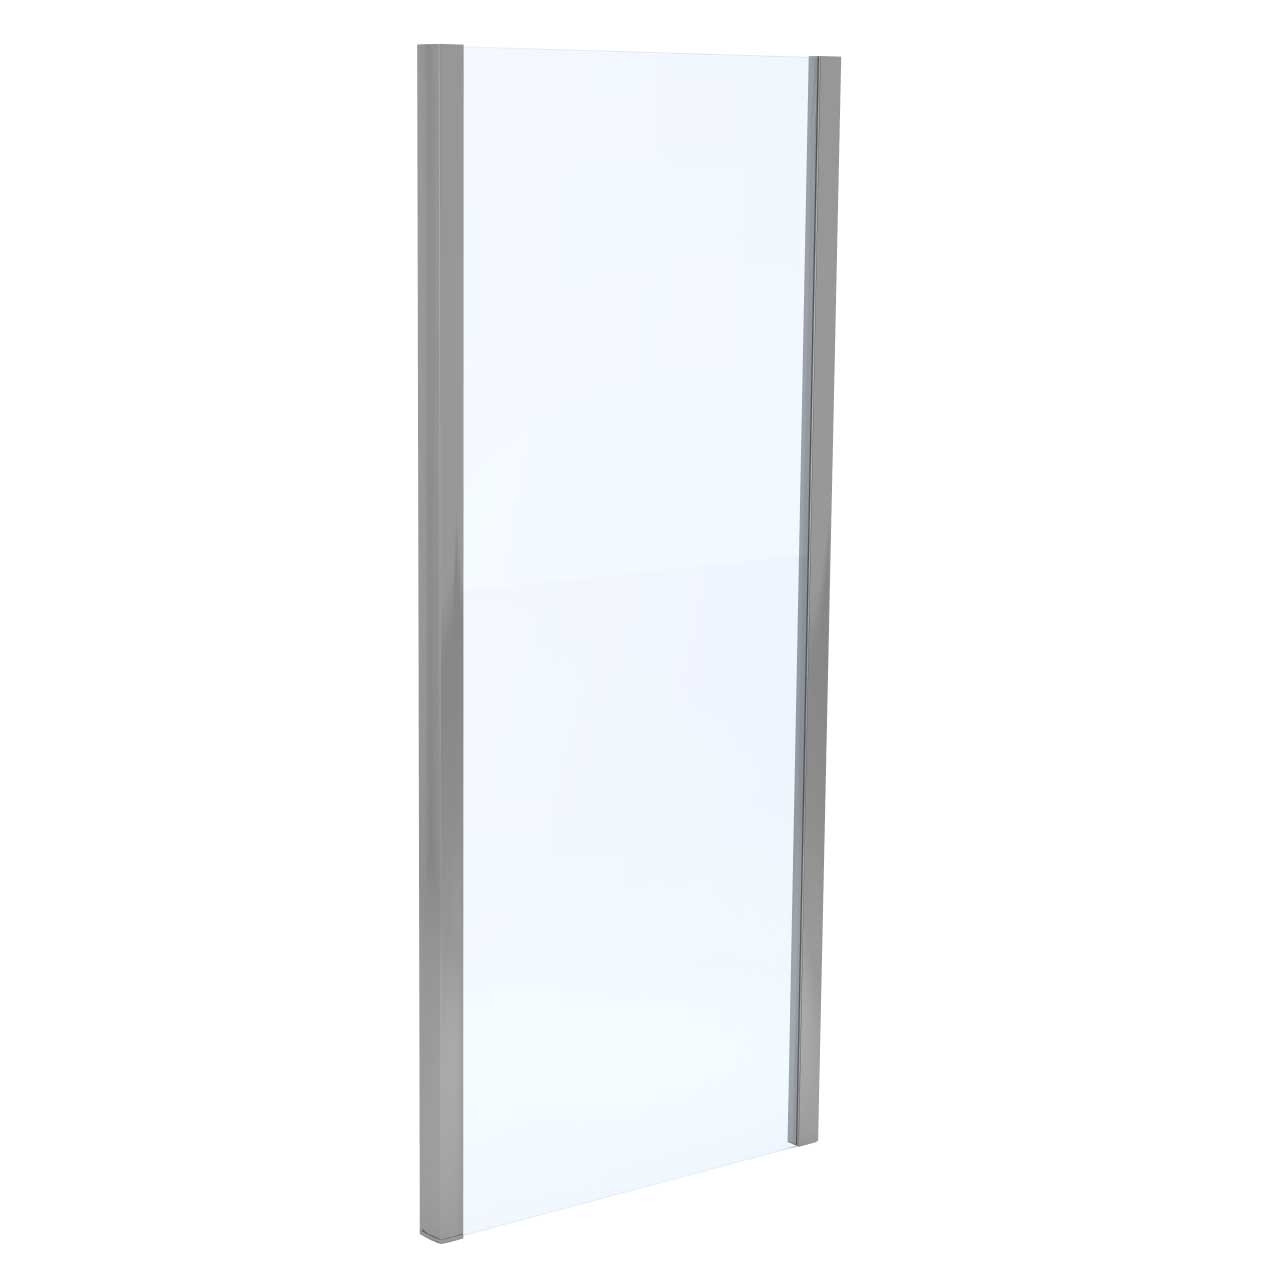 Series 6 1000 x 800 Sliding Door Enclosure